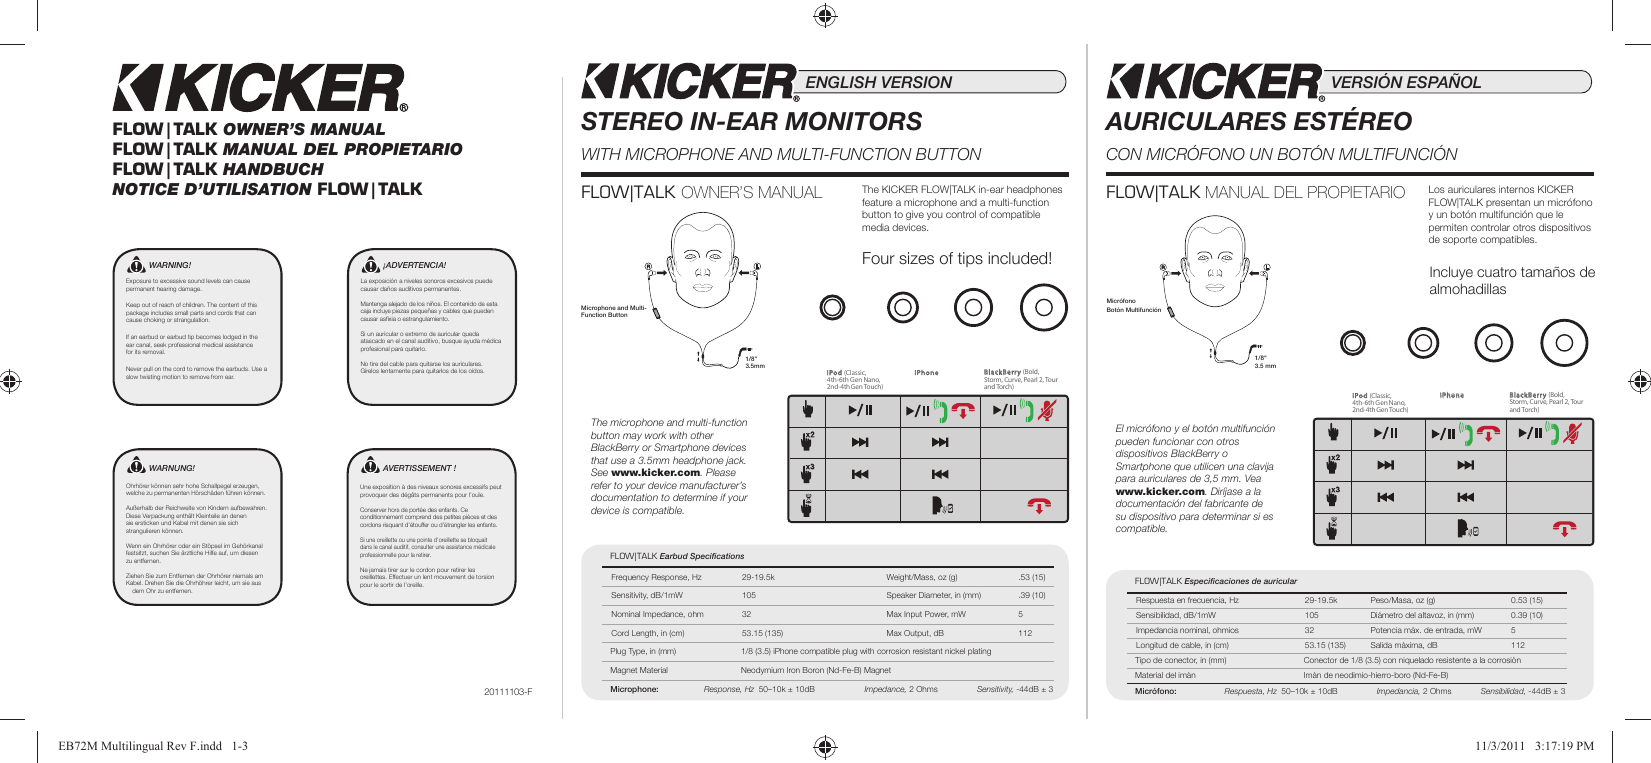 Language specific packaging - multilingual user manual